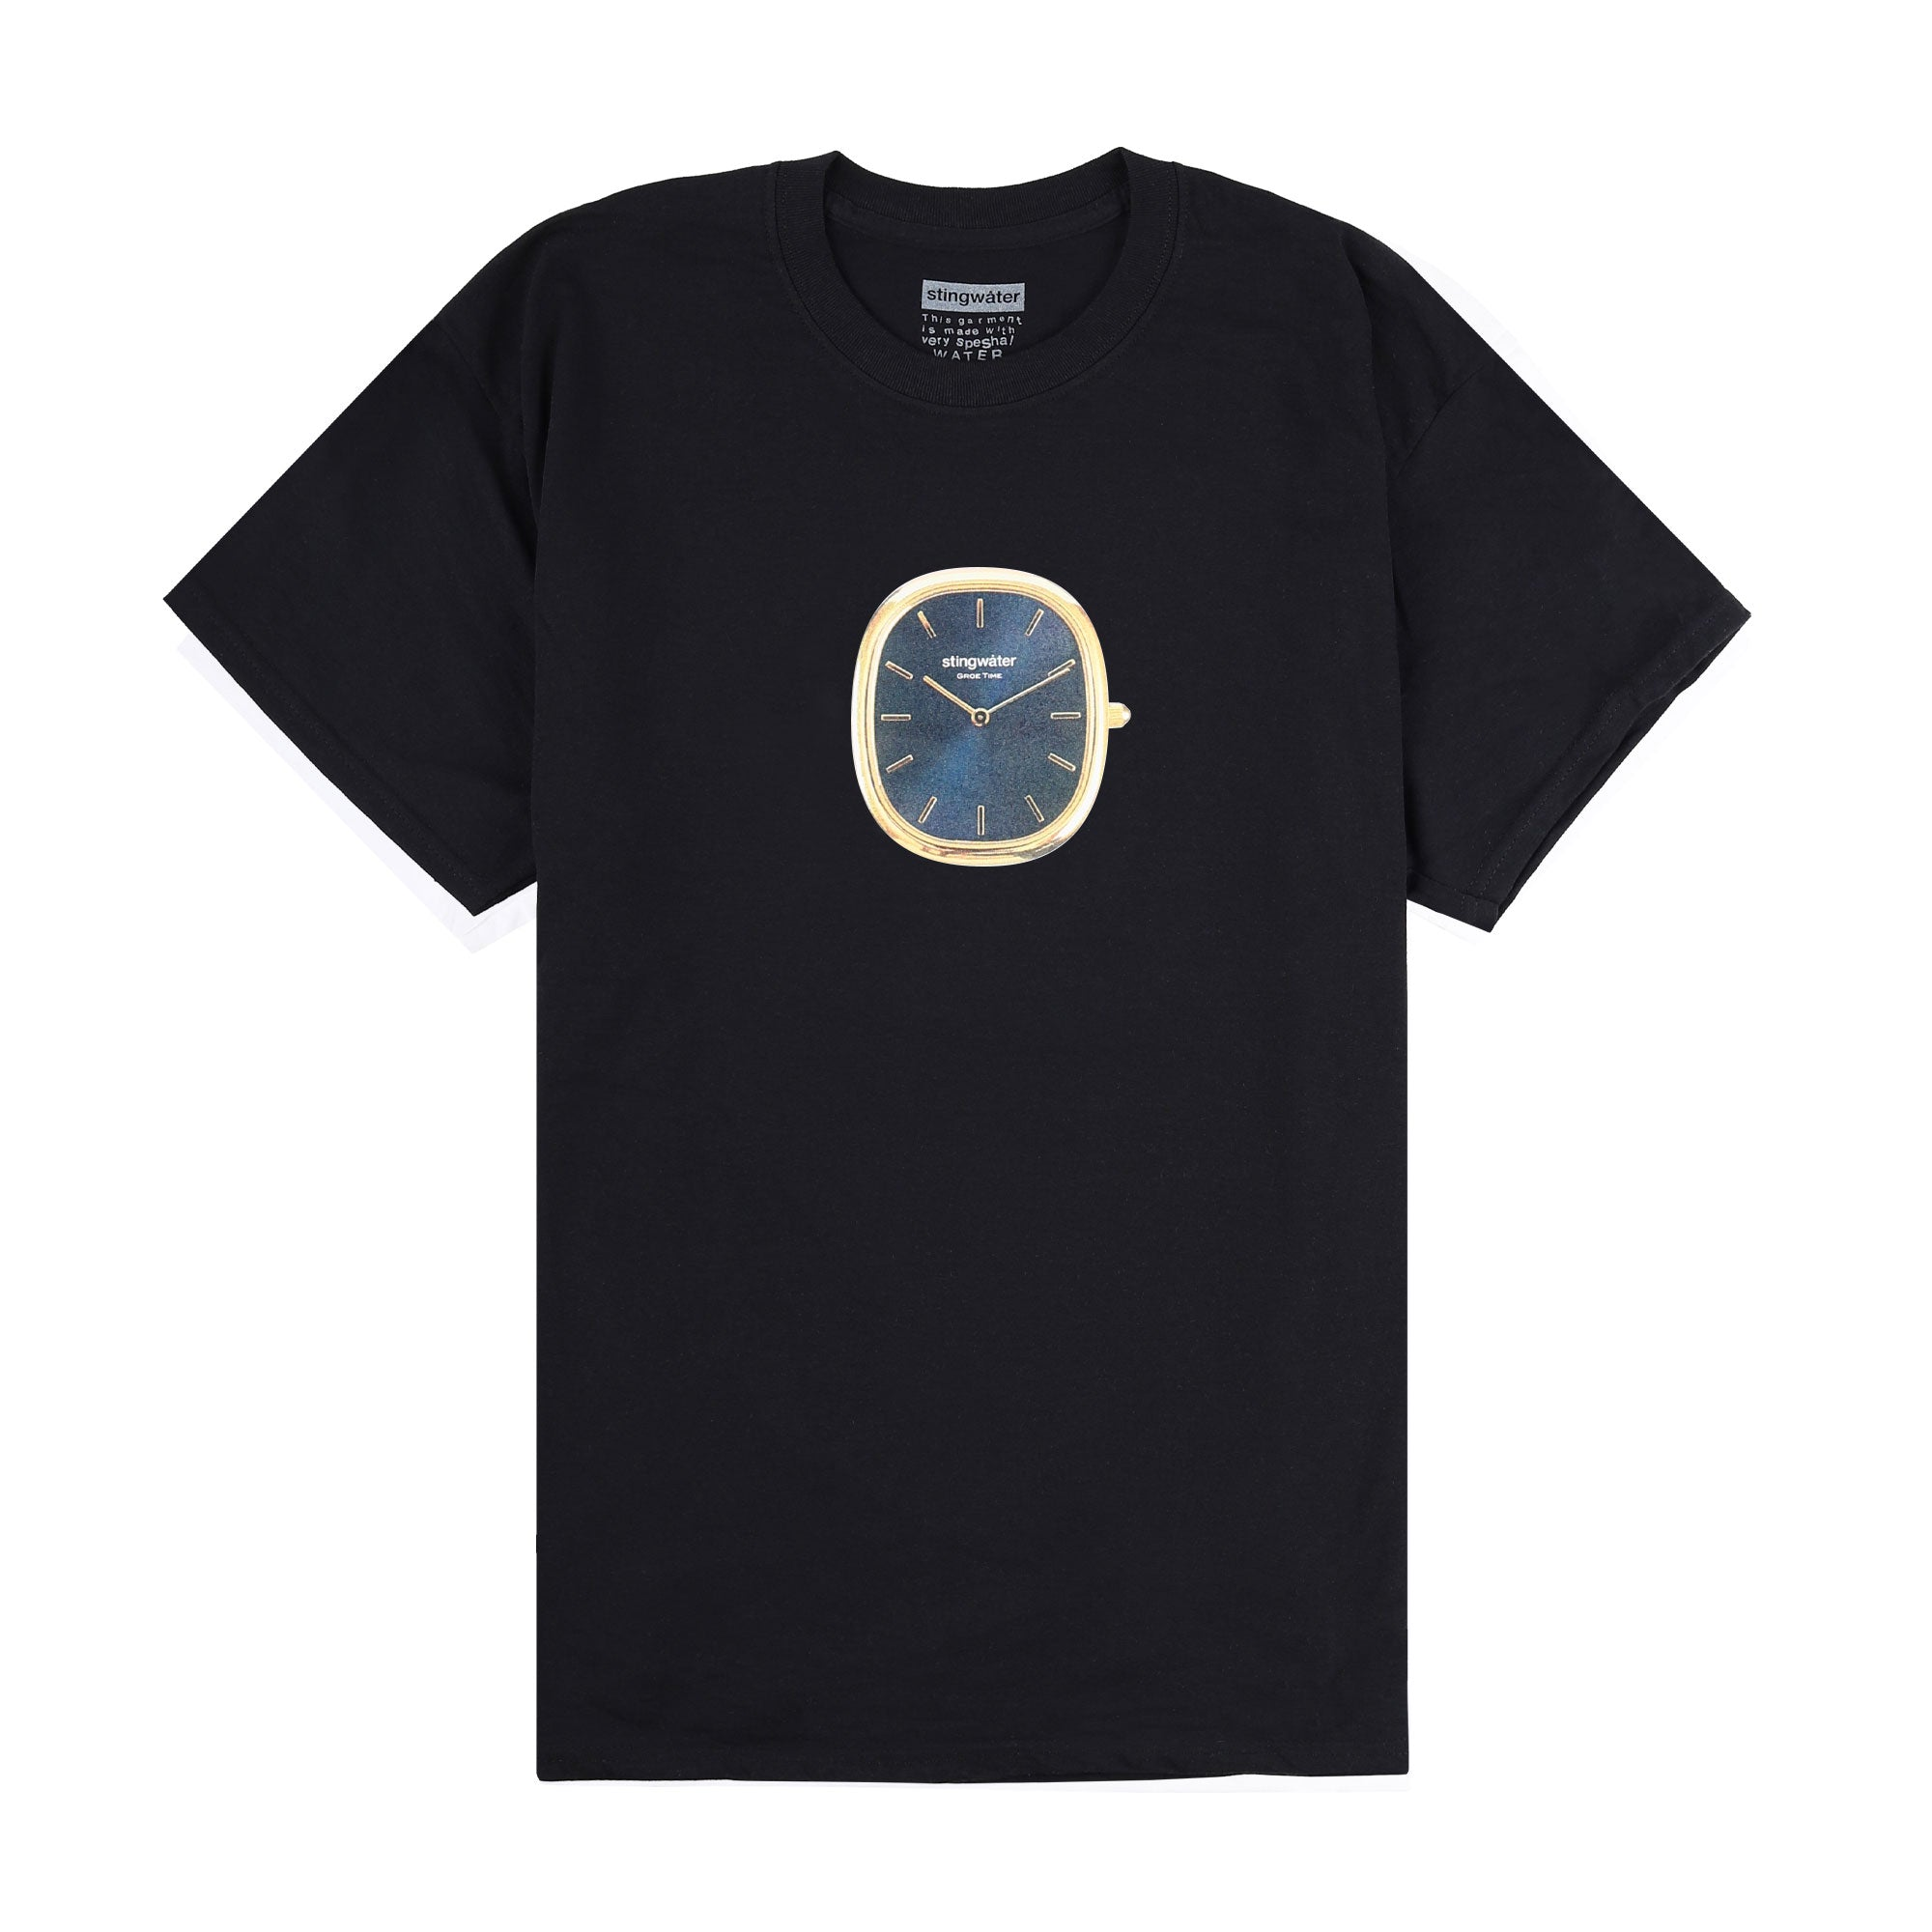 Stingwater Groetime Tee Product Photo #1